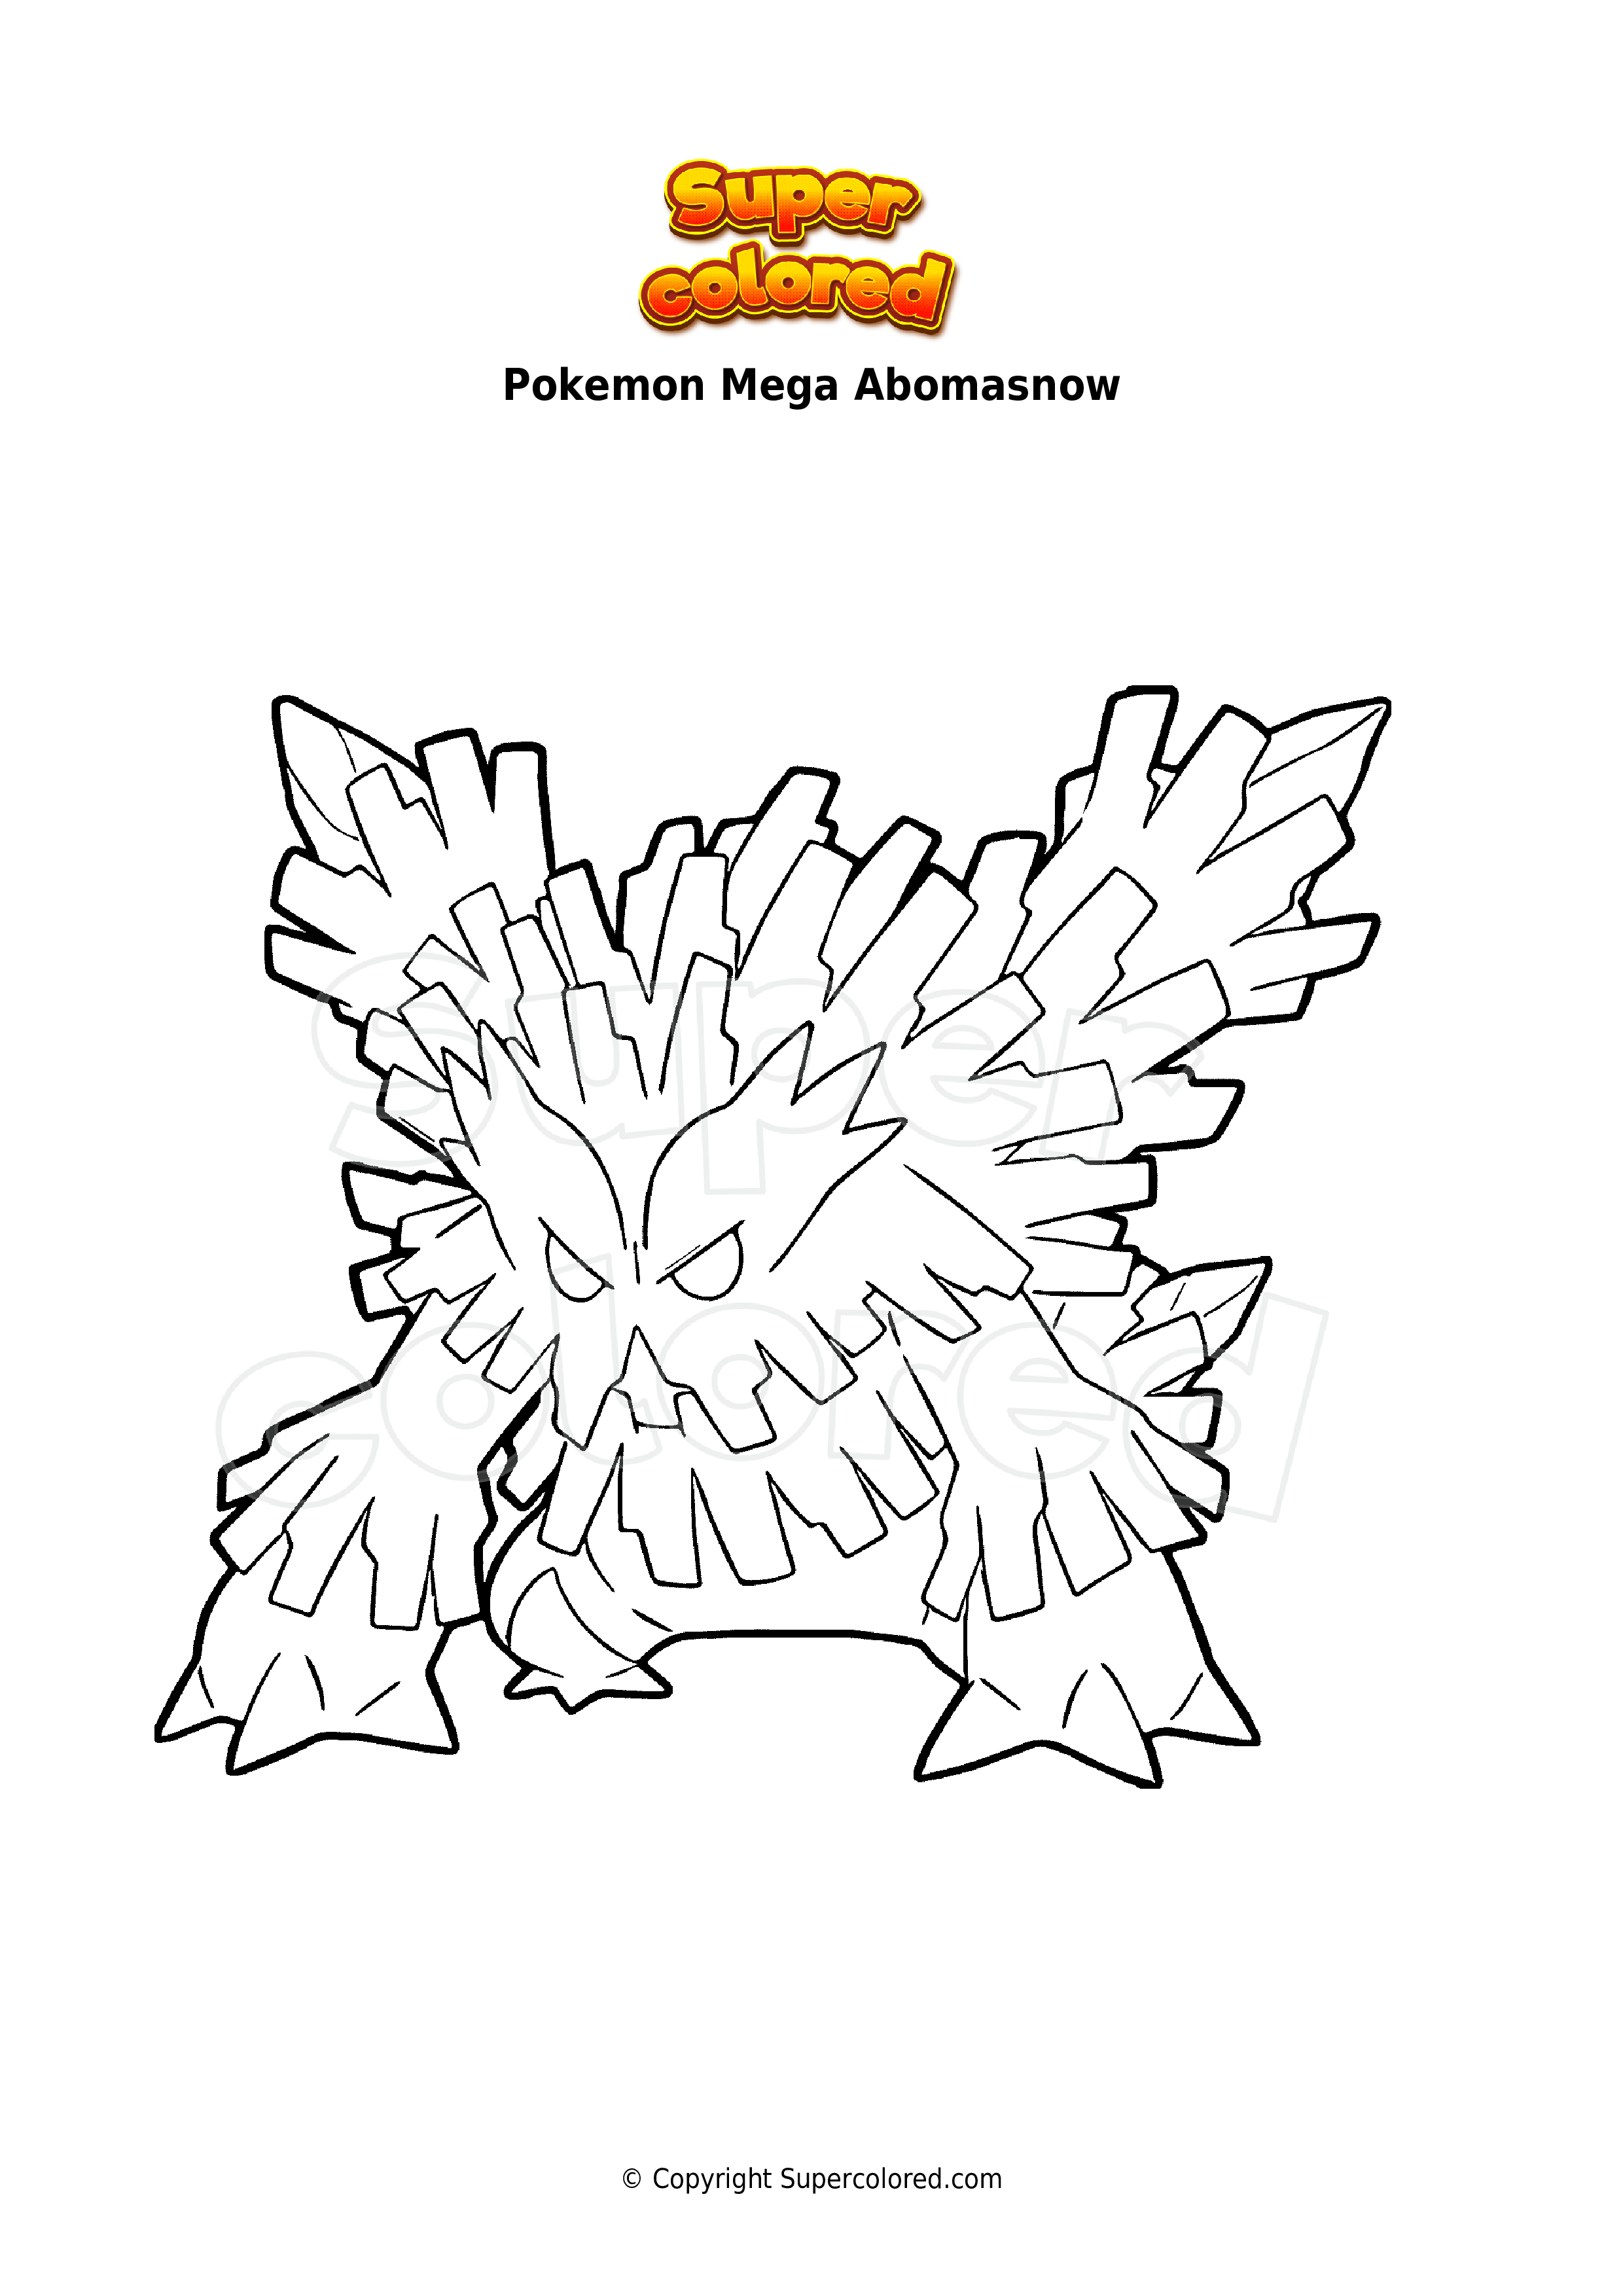 Coloring Page Pokemon Mega Abomasnow Supercolored Com